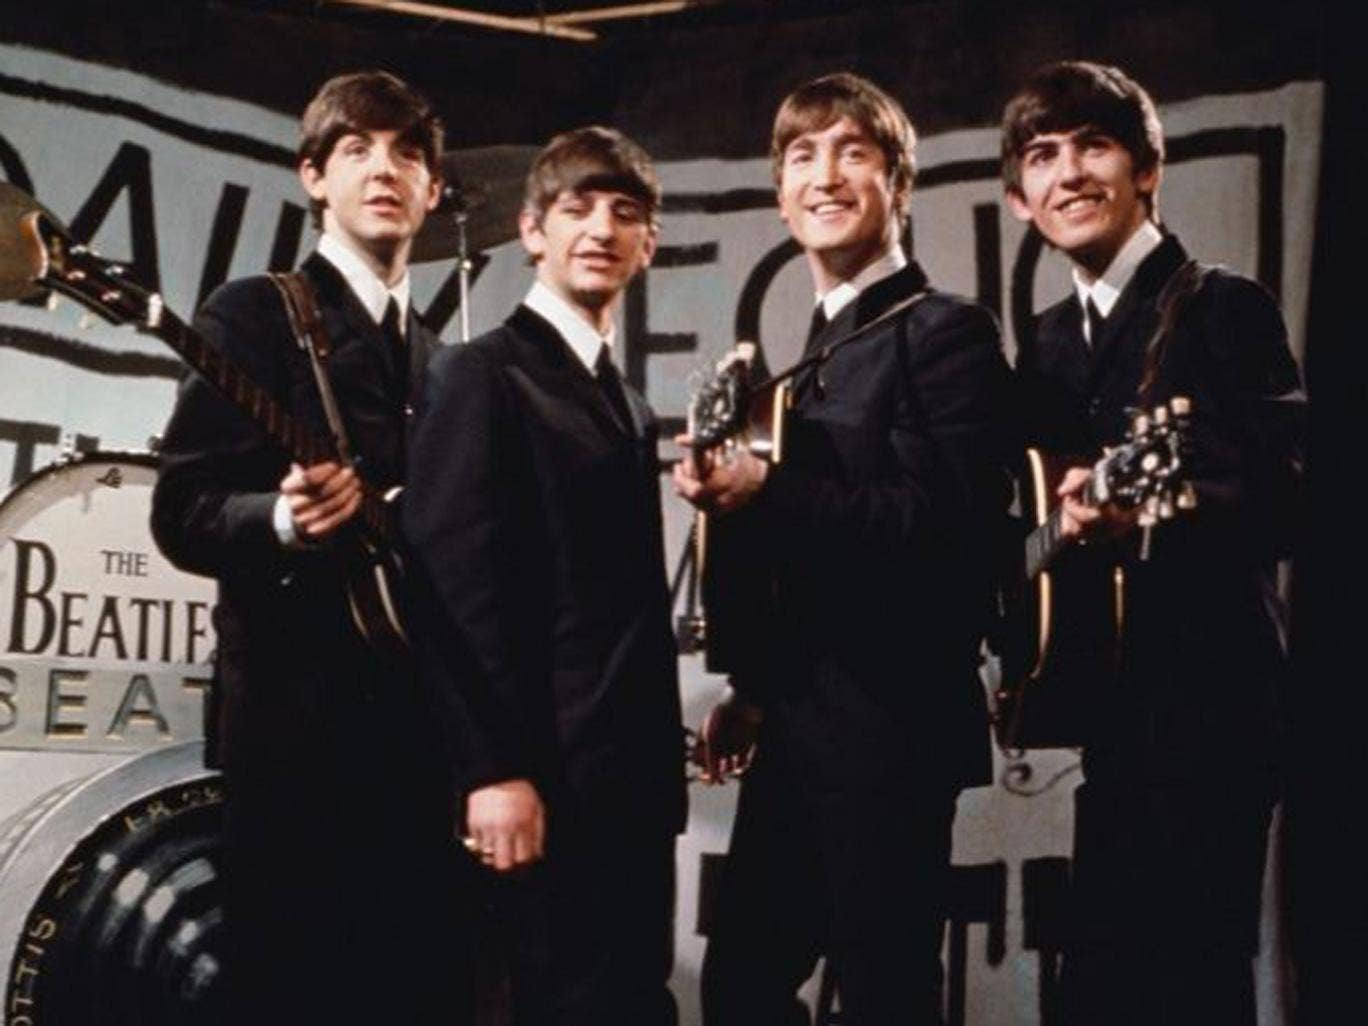 1- The Beatles With a massive 15 number one albums The Beatles are the undisputed kings of the Official Albums Chart. Their first chart-topper was 'Please Please Me' in May 1963 with others including 'A Hard Day's Night', '